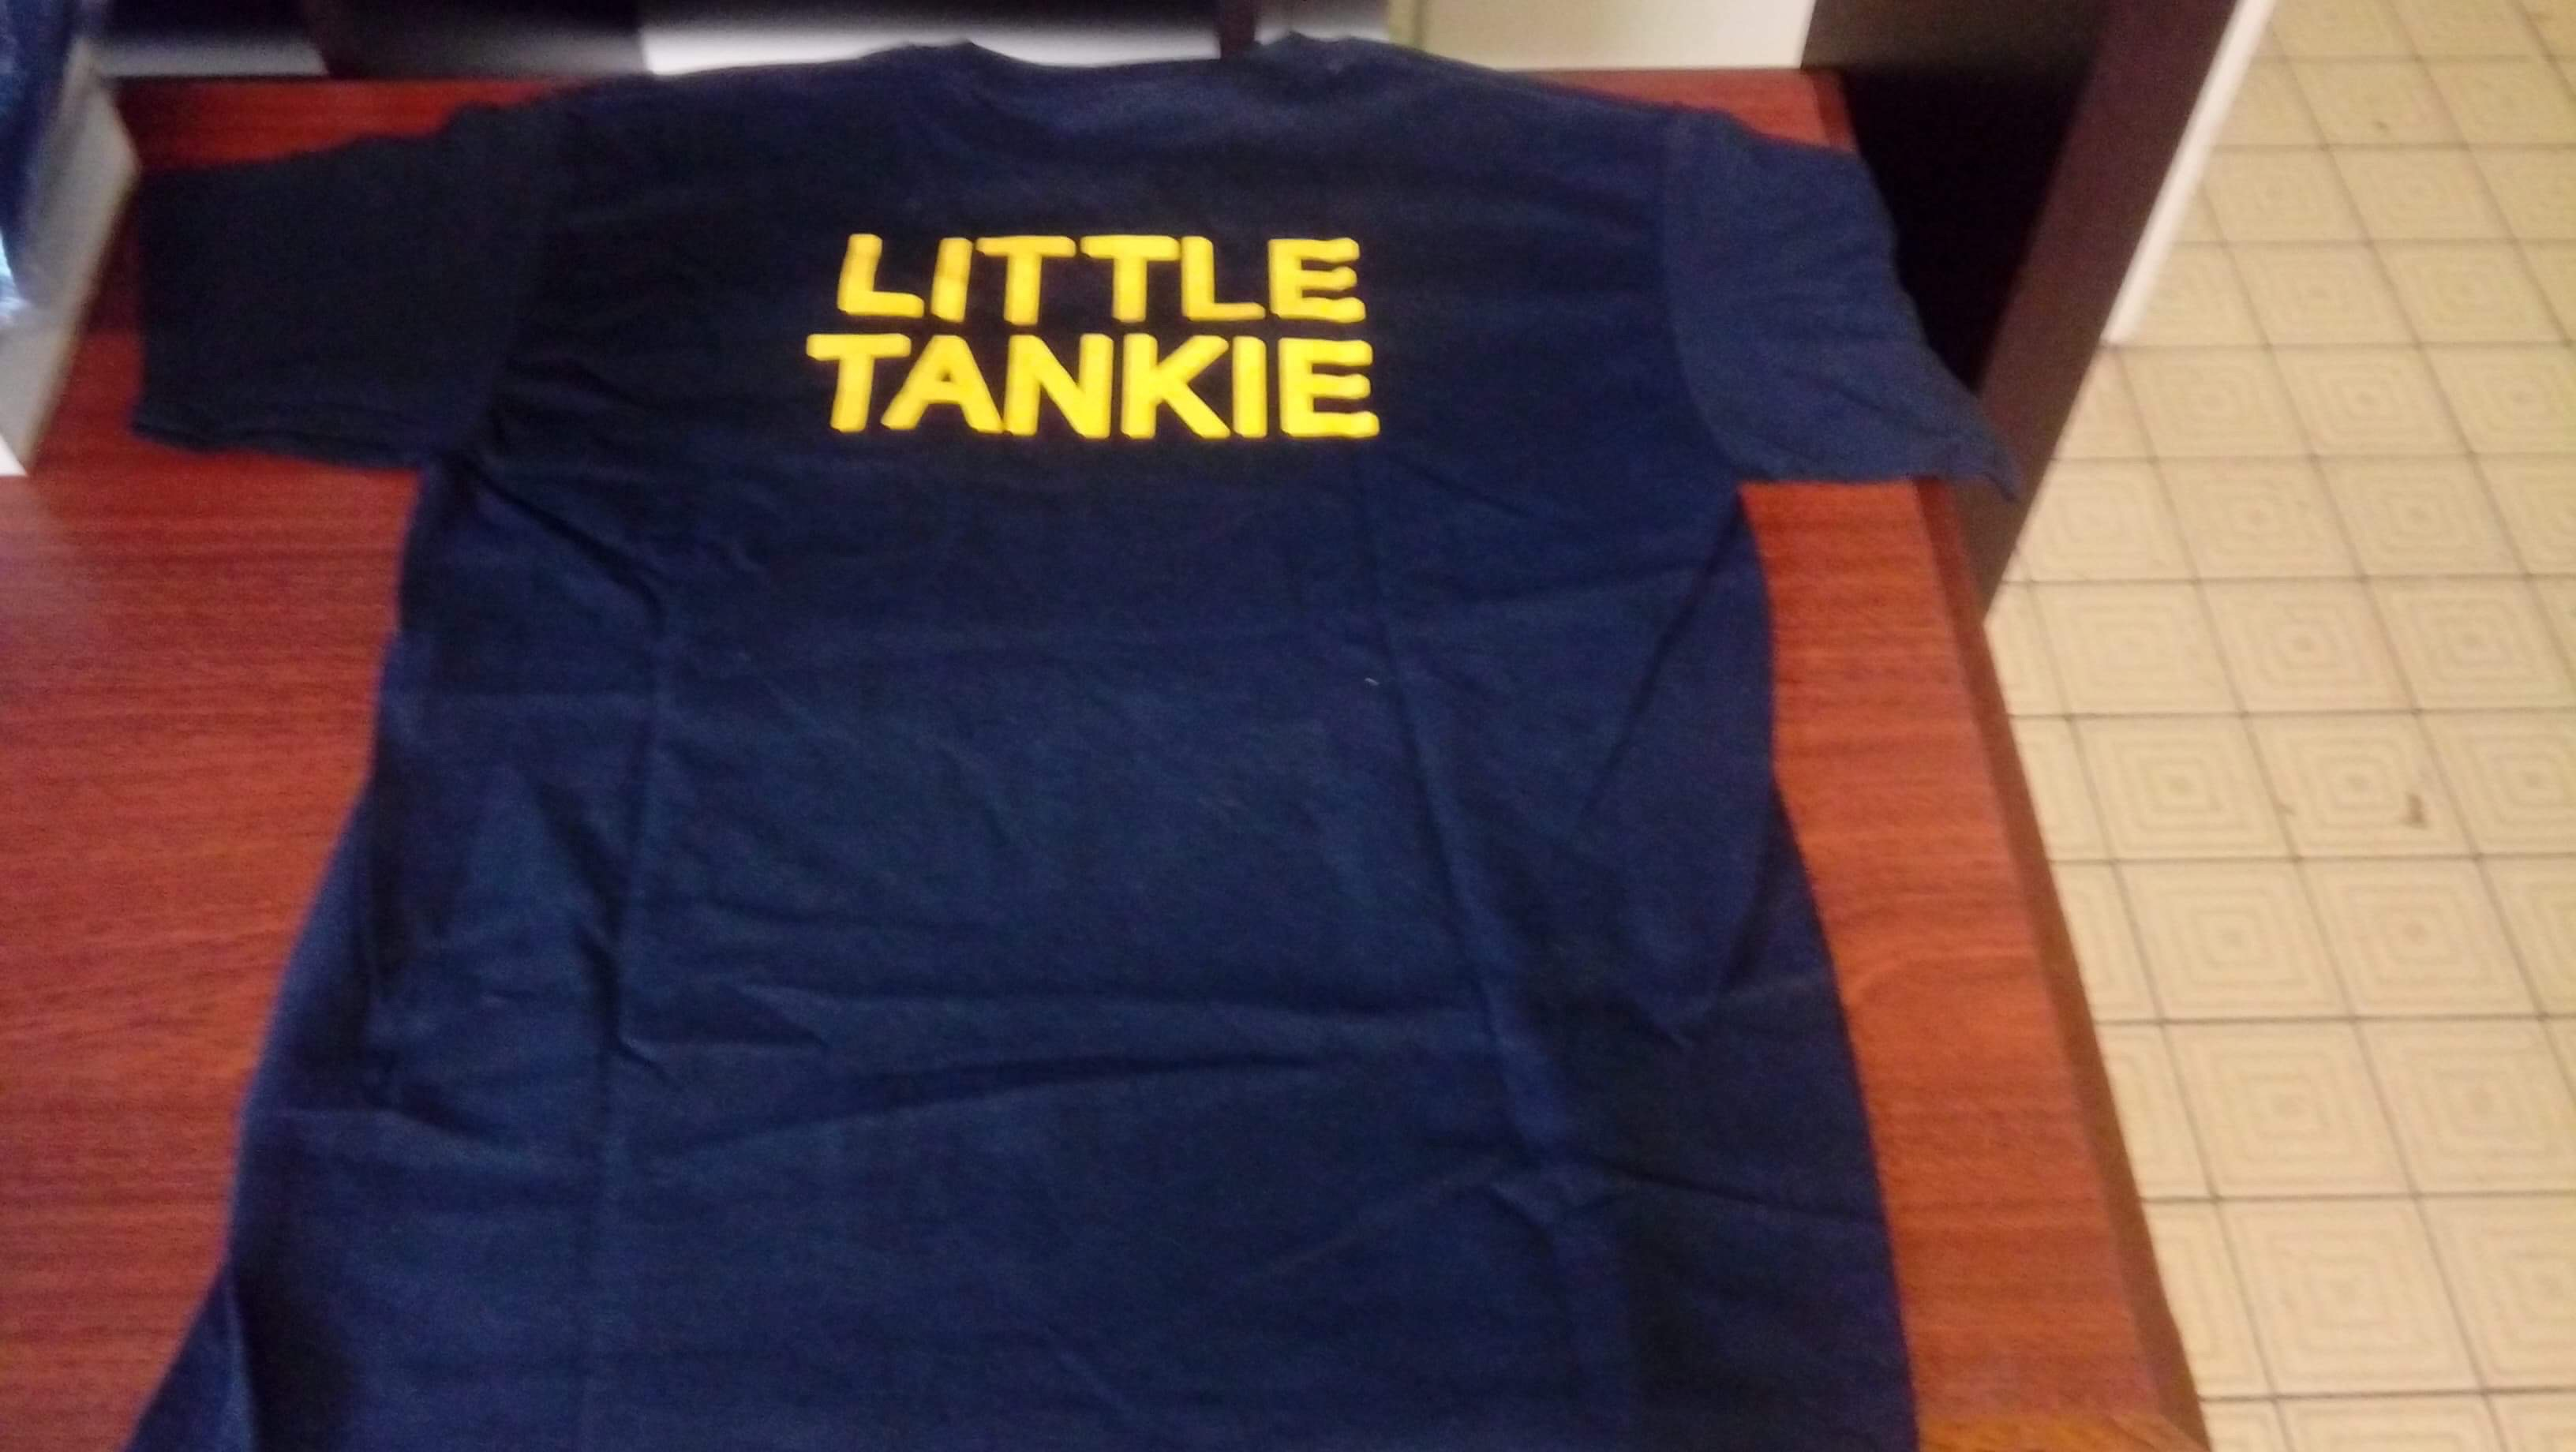 Child's XL cotton t-shirt